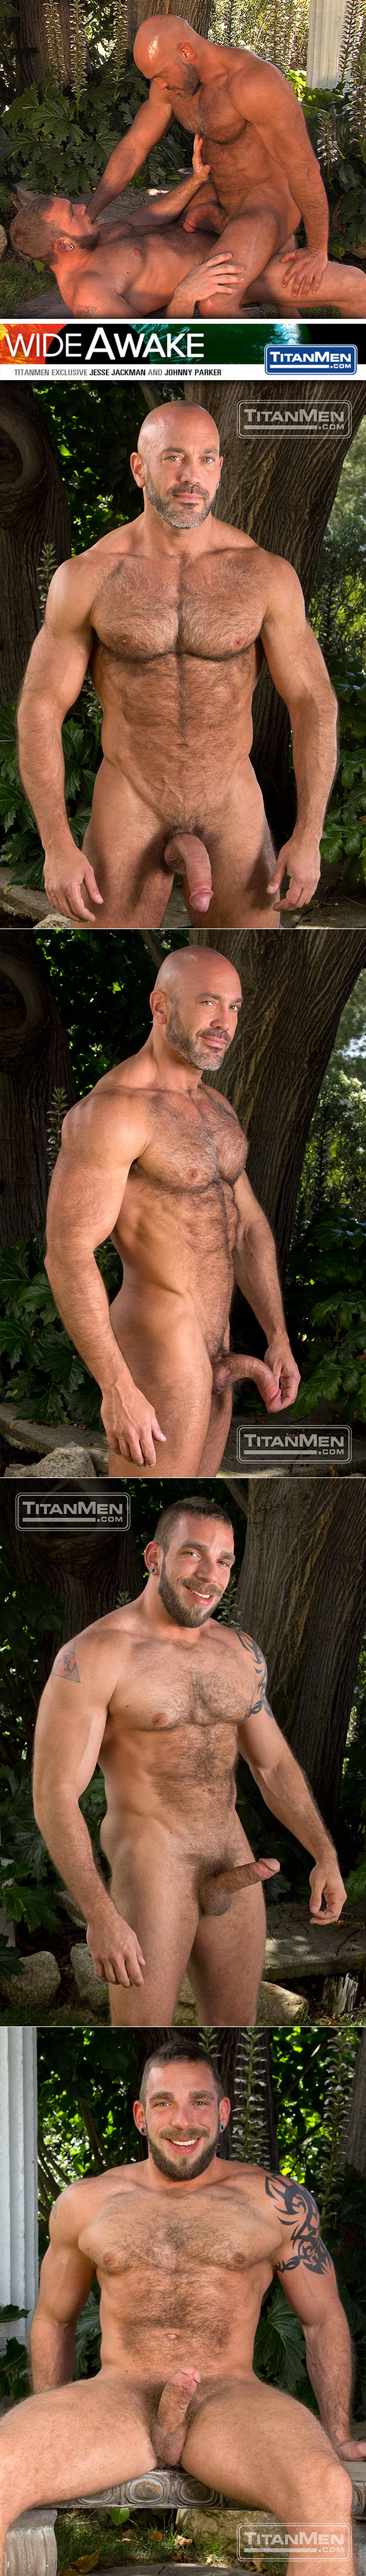 "Titan Men: Johnny Parker fucks Jesse Jackman in ""Wide Awake"""